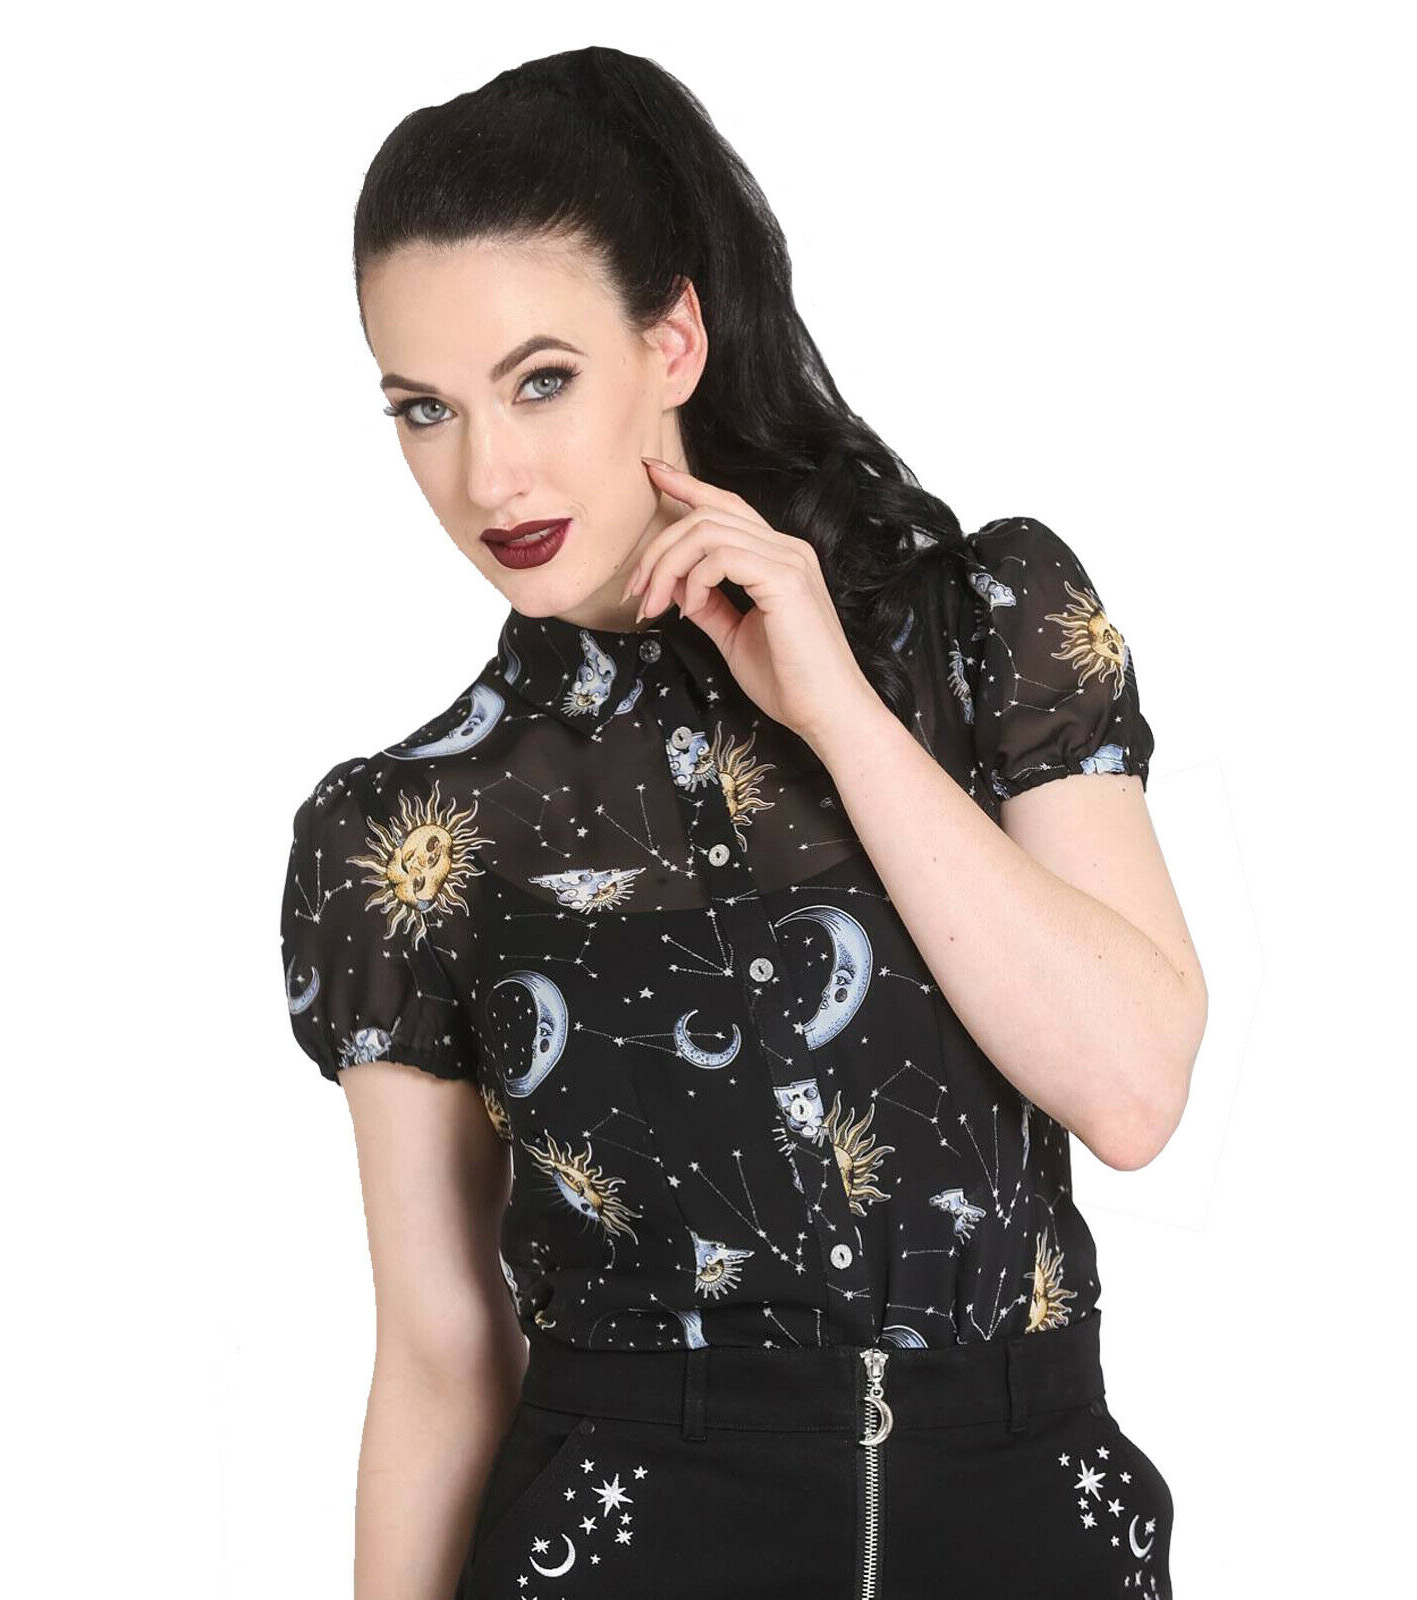 Hell-Bunny-50s-Shirt-Top-Gothic-Black-Sun-Moon-Stars-SOLARIS-Blouse-All-Sizes thumbnail 39